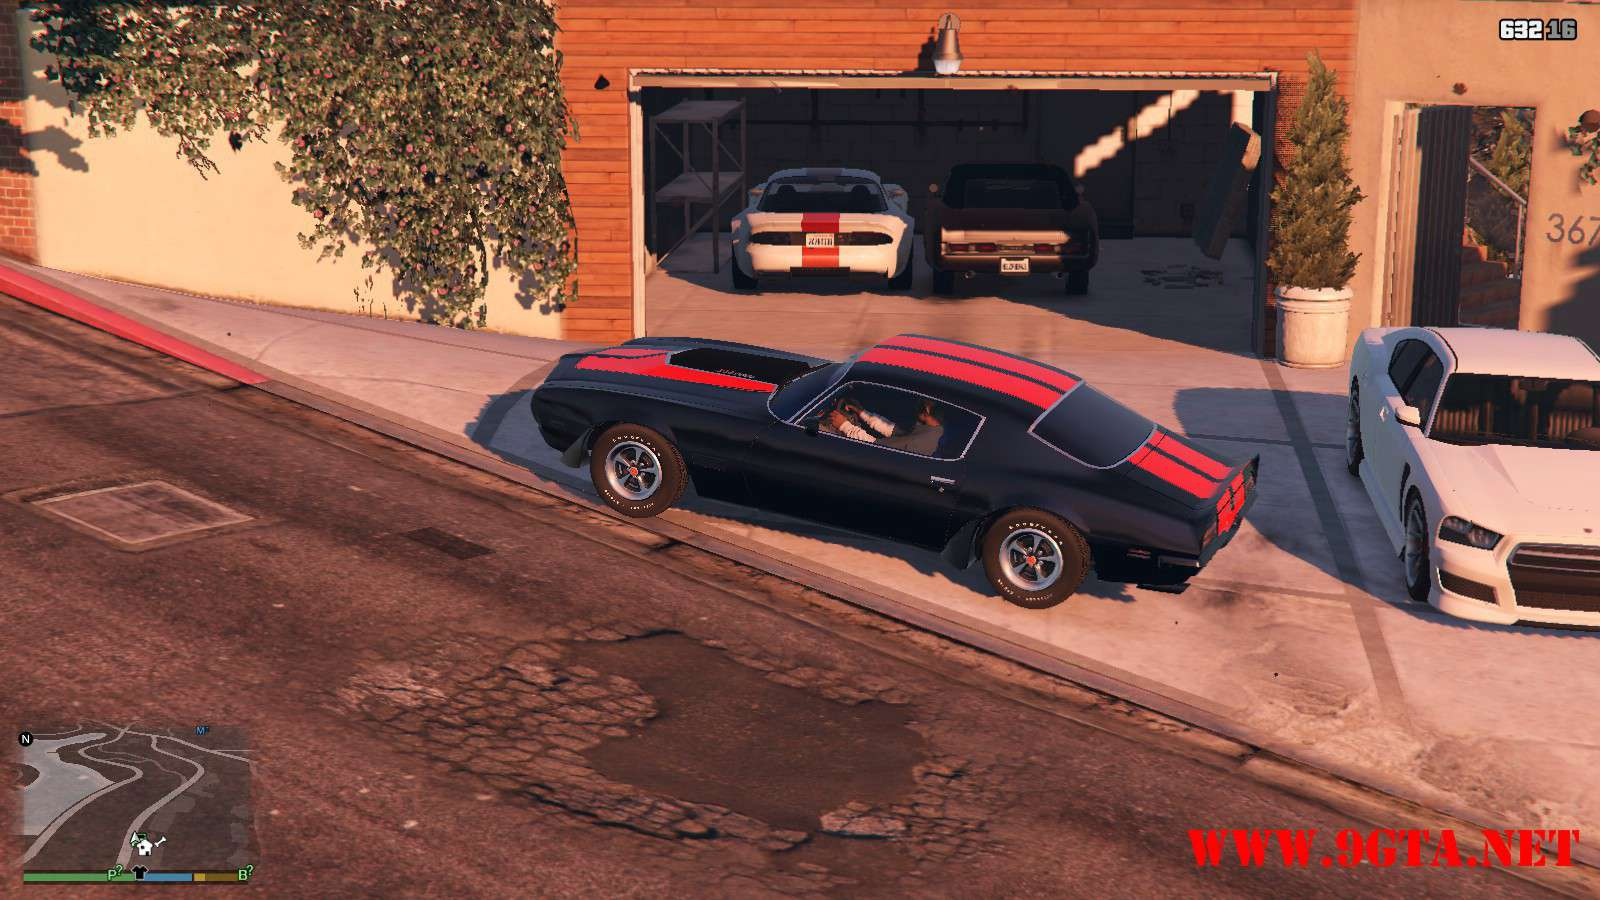 1970 Pontiac Firebird v1.0 GTA5 Mods (13)